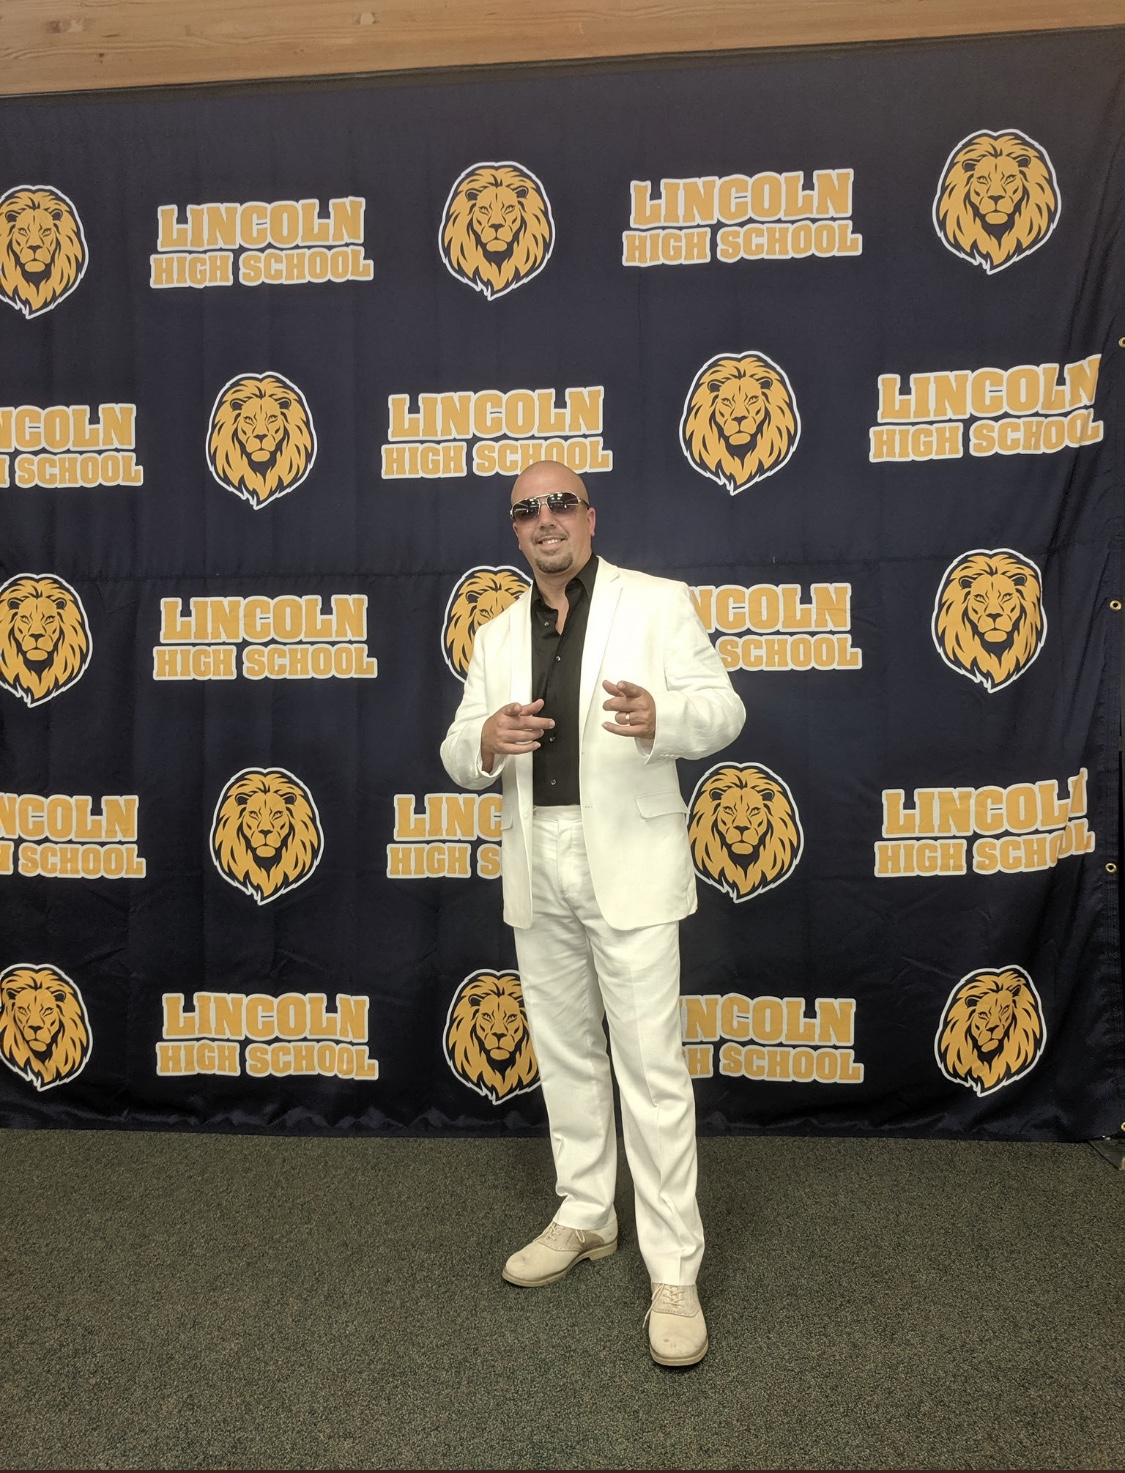 Señor Luz dressed up as music artist Pitbull for school rally!